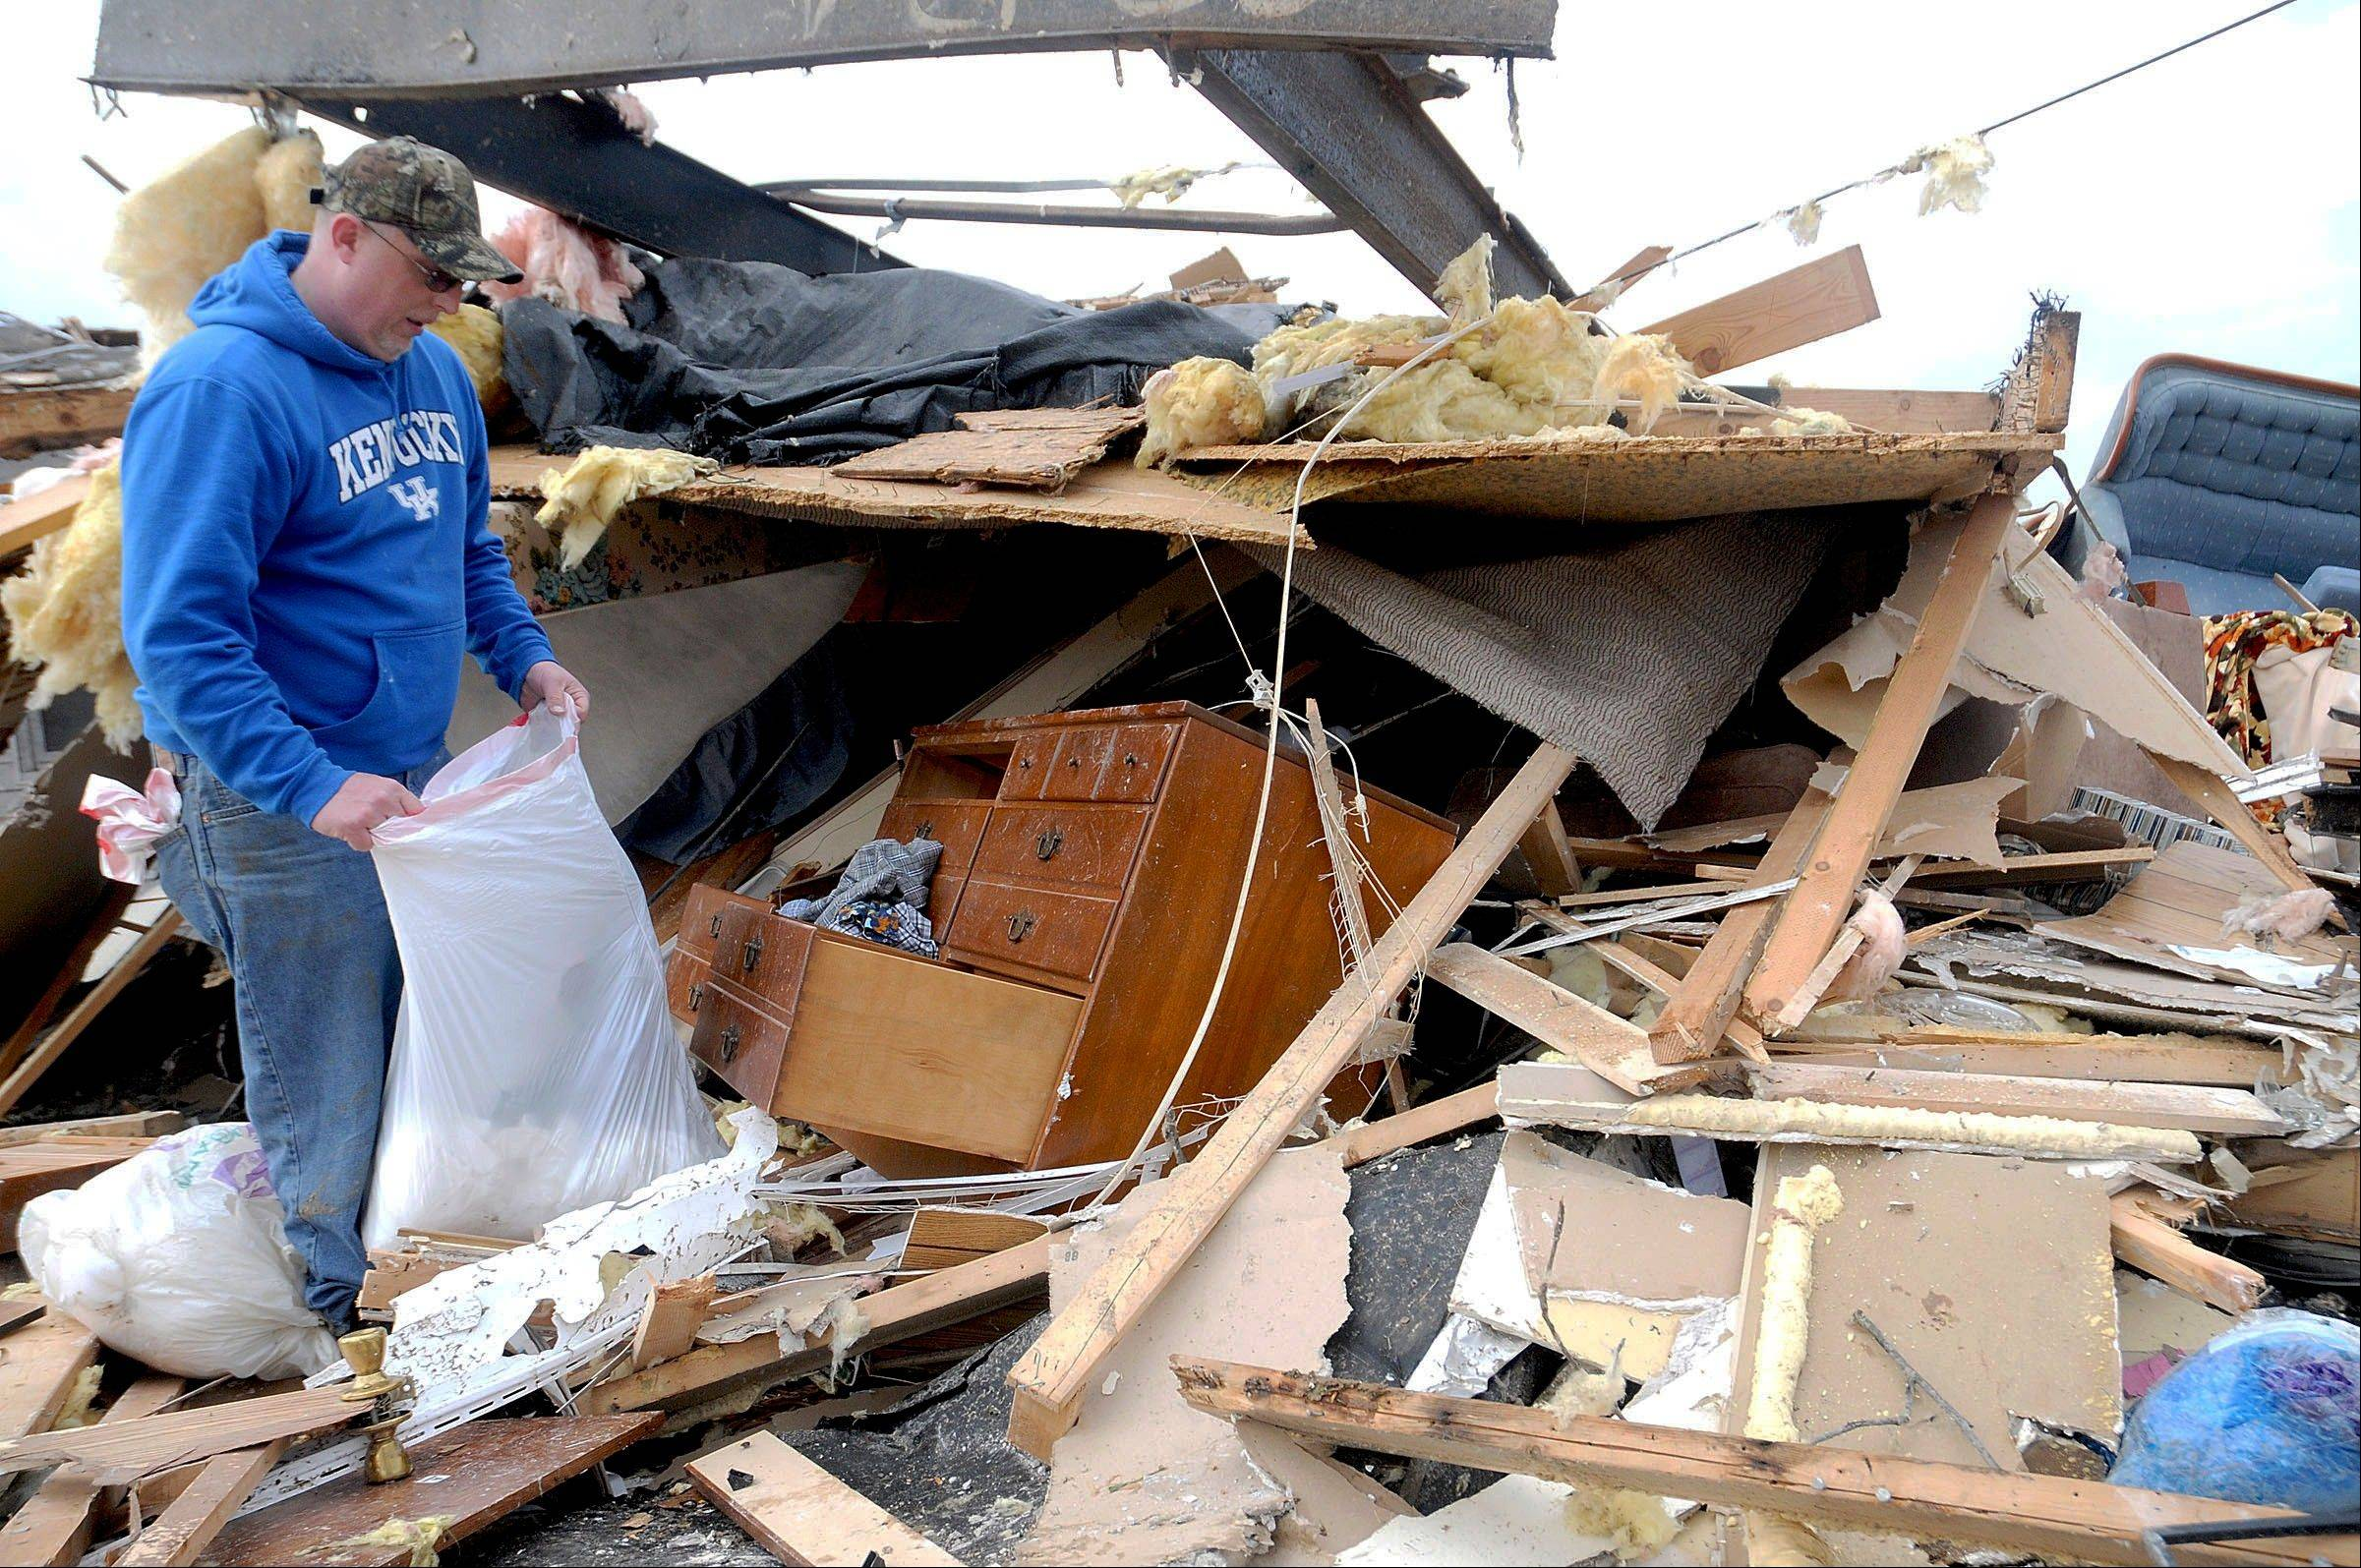 Roy Mauney of Harrisburg, Ill., collects clothes from a dresser in what remains of his parents house after a severe storm hit in the early morning hours on Wednesday, Feb. 29, 2012, in Saline County city. Mauney said his parents survived the storm by taking cover in a bathtub before their house blew off its foundation and across the street. A severe pre-dawn storm pounded portions of southern Illinois on Wednesday. Several deaths have been reported in Harrisburg and left the city's medical center scrambling to treat an influx of injured, the hospital's top administrator said.